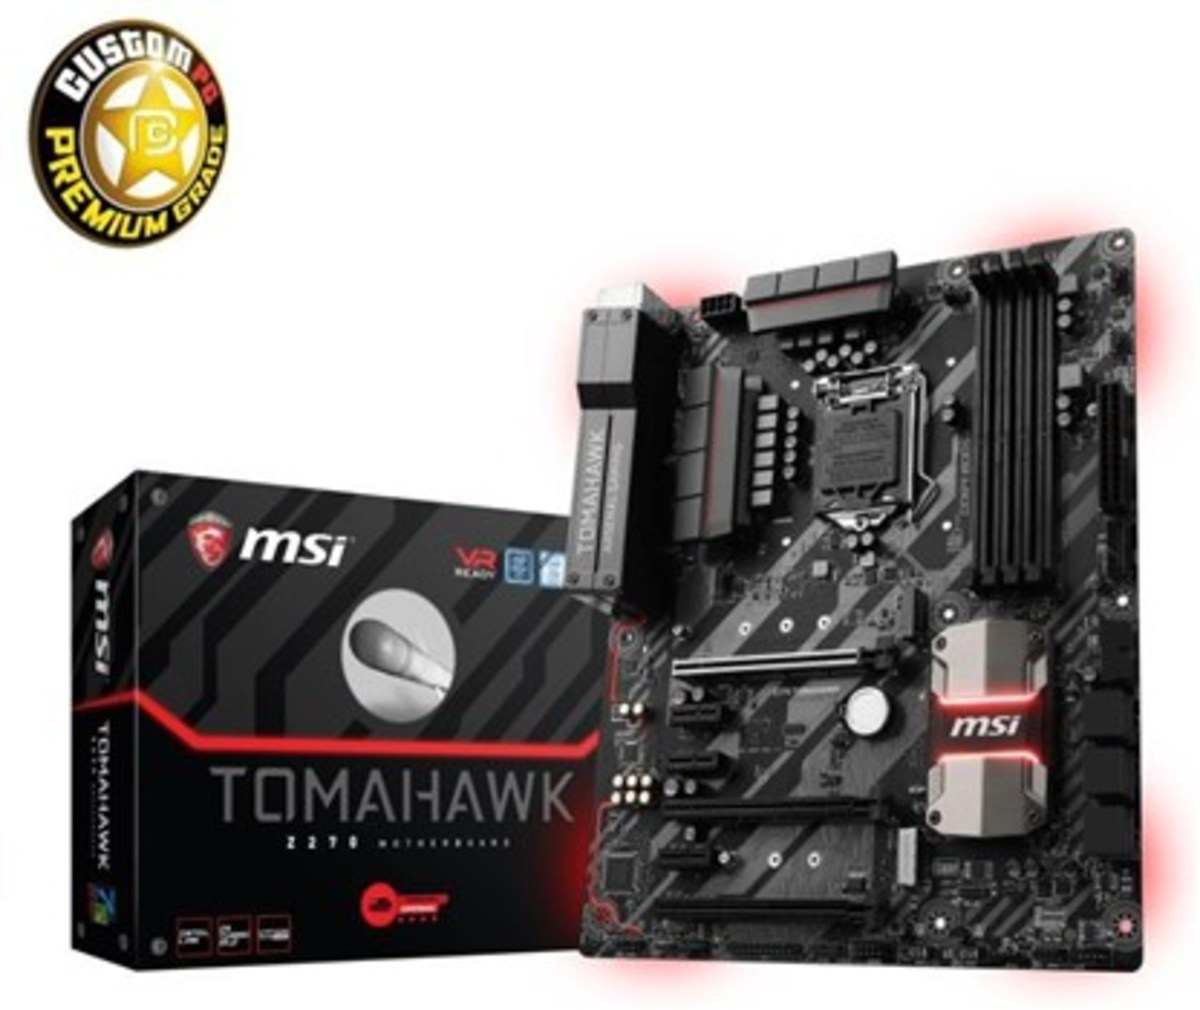 MSI Z270 Tomahawk Motherboard Review